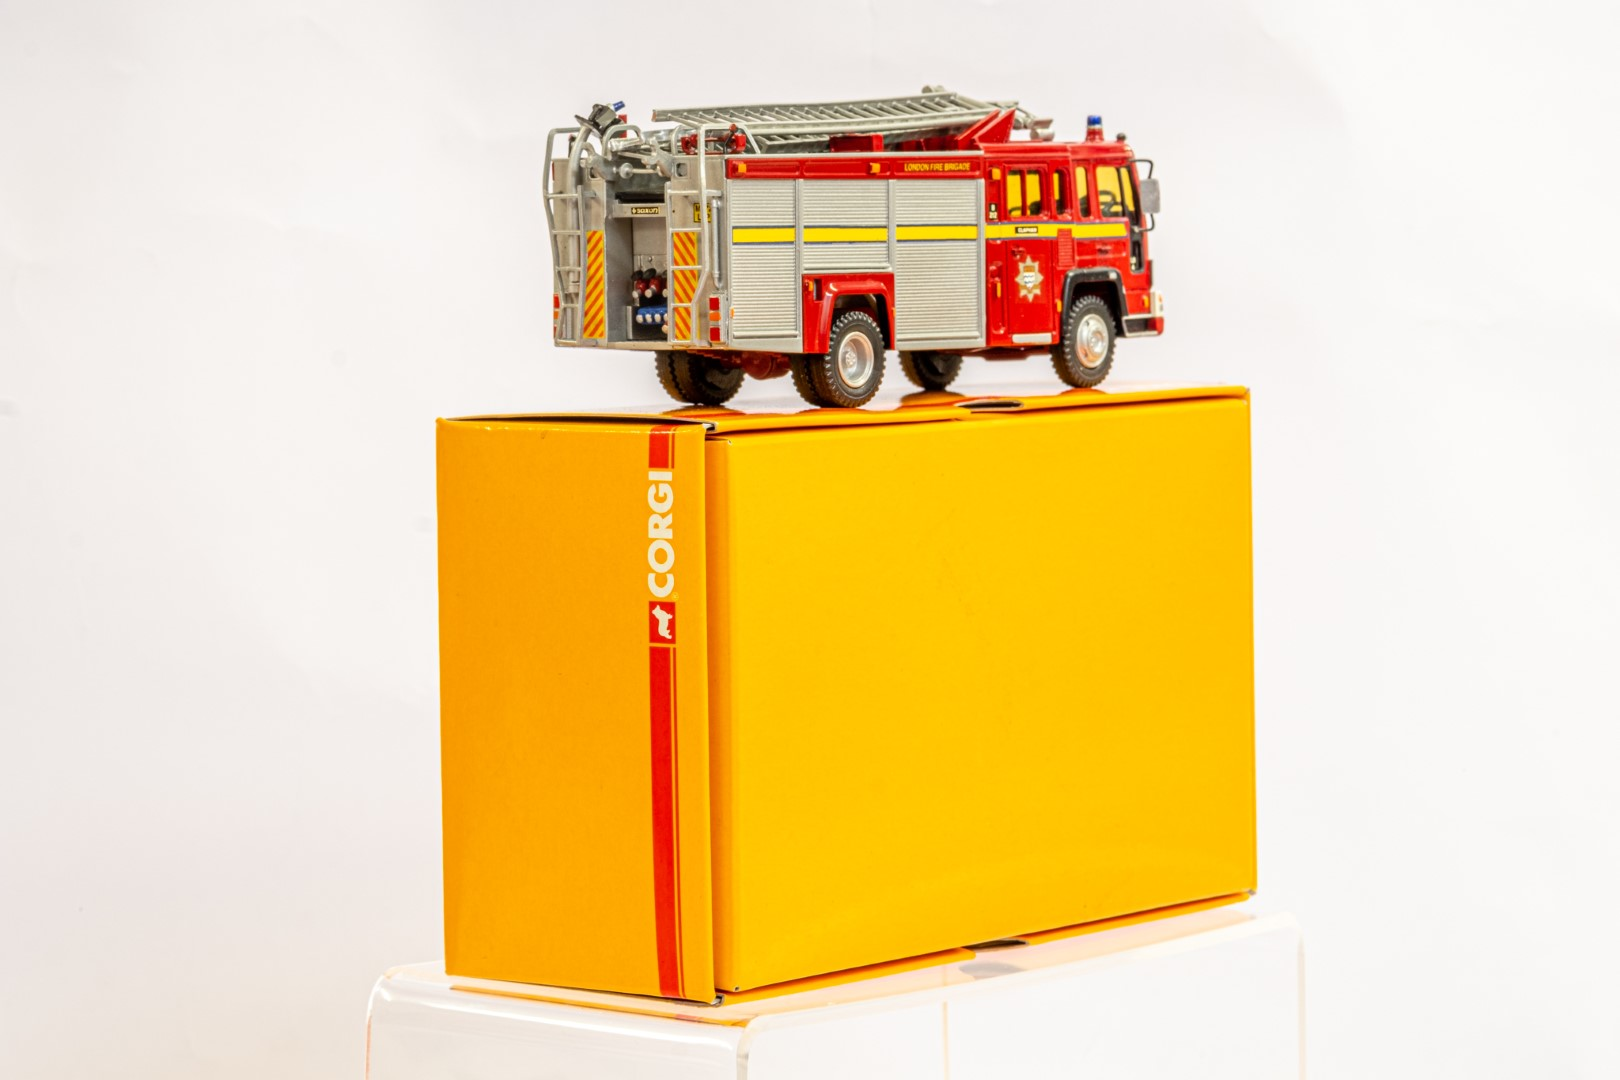 Fire Brigade Models Volvo Fire Engine - Clapham Fire Brigade - In Wrong Box - Image 3 of 7